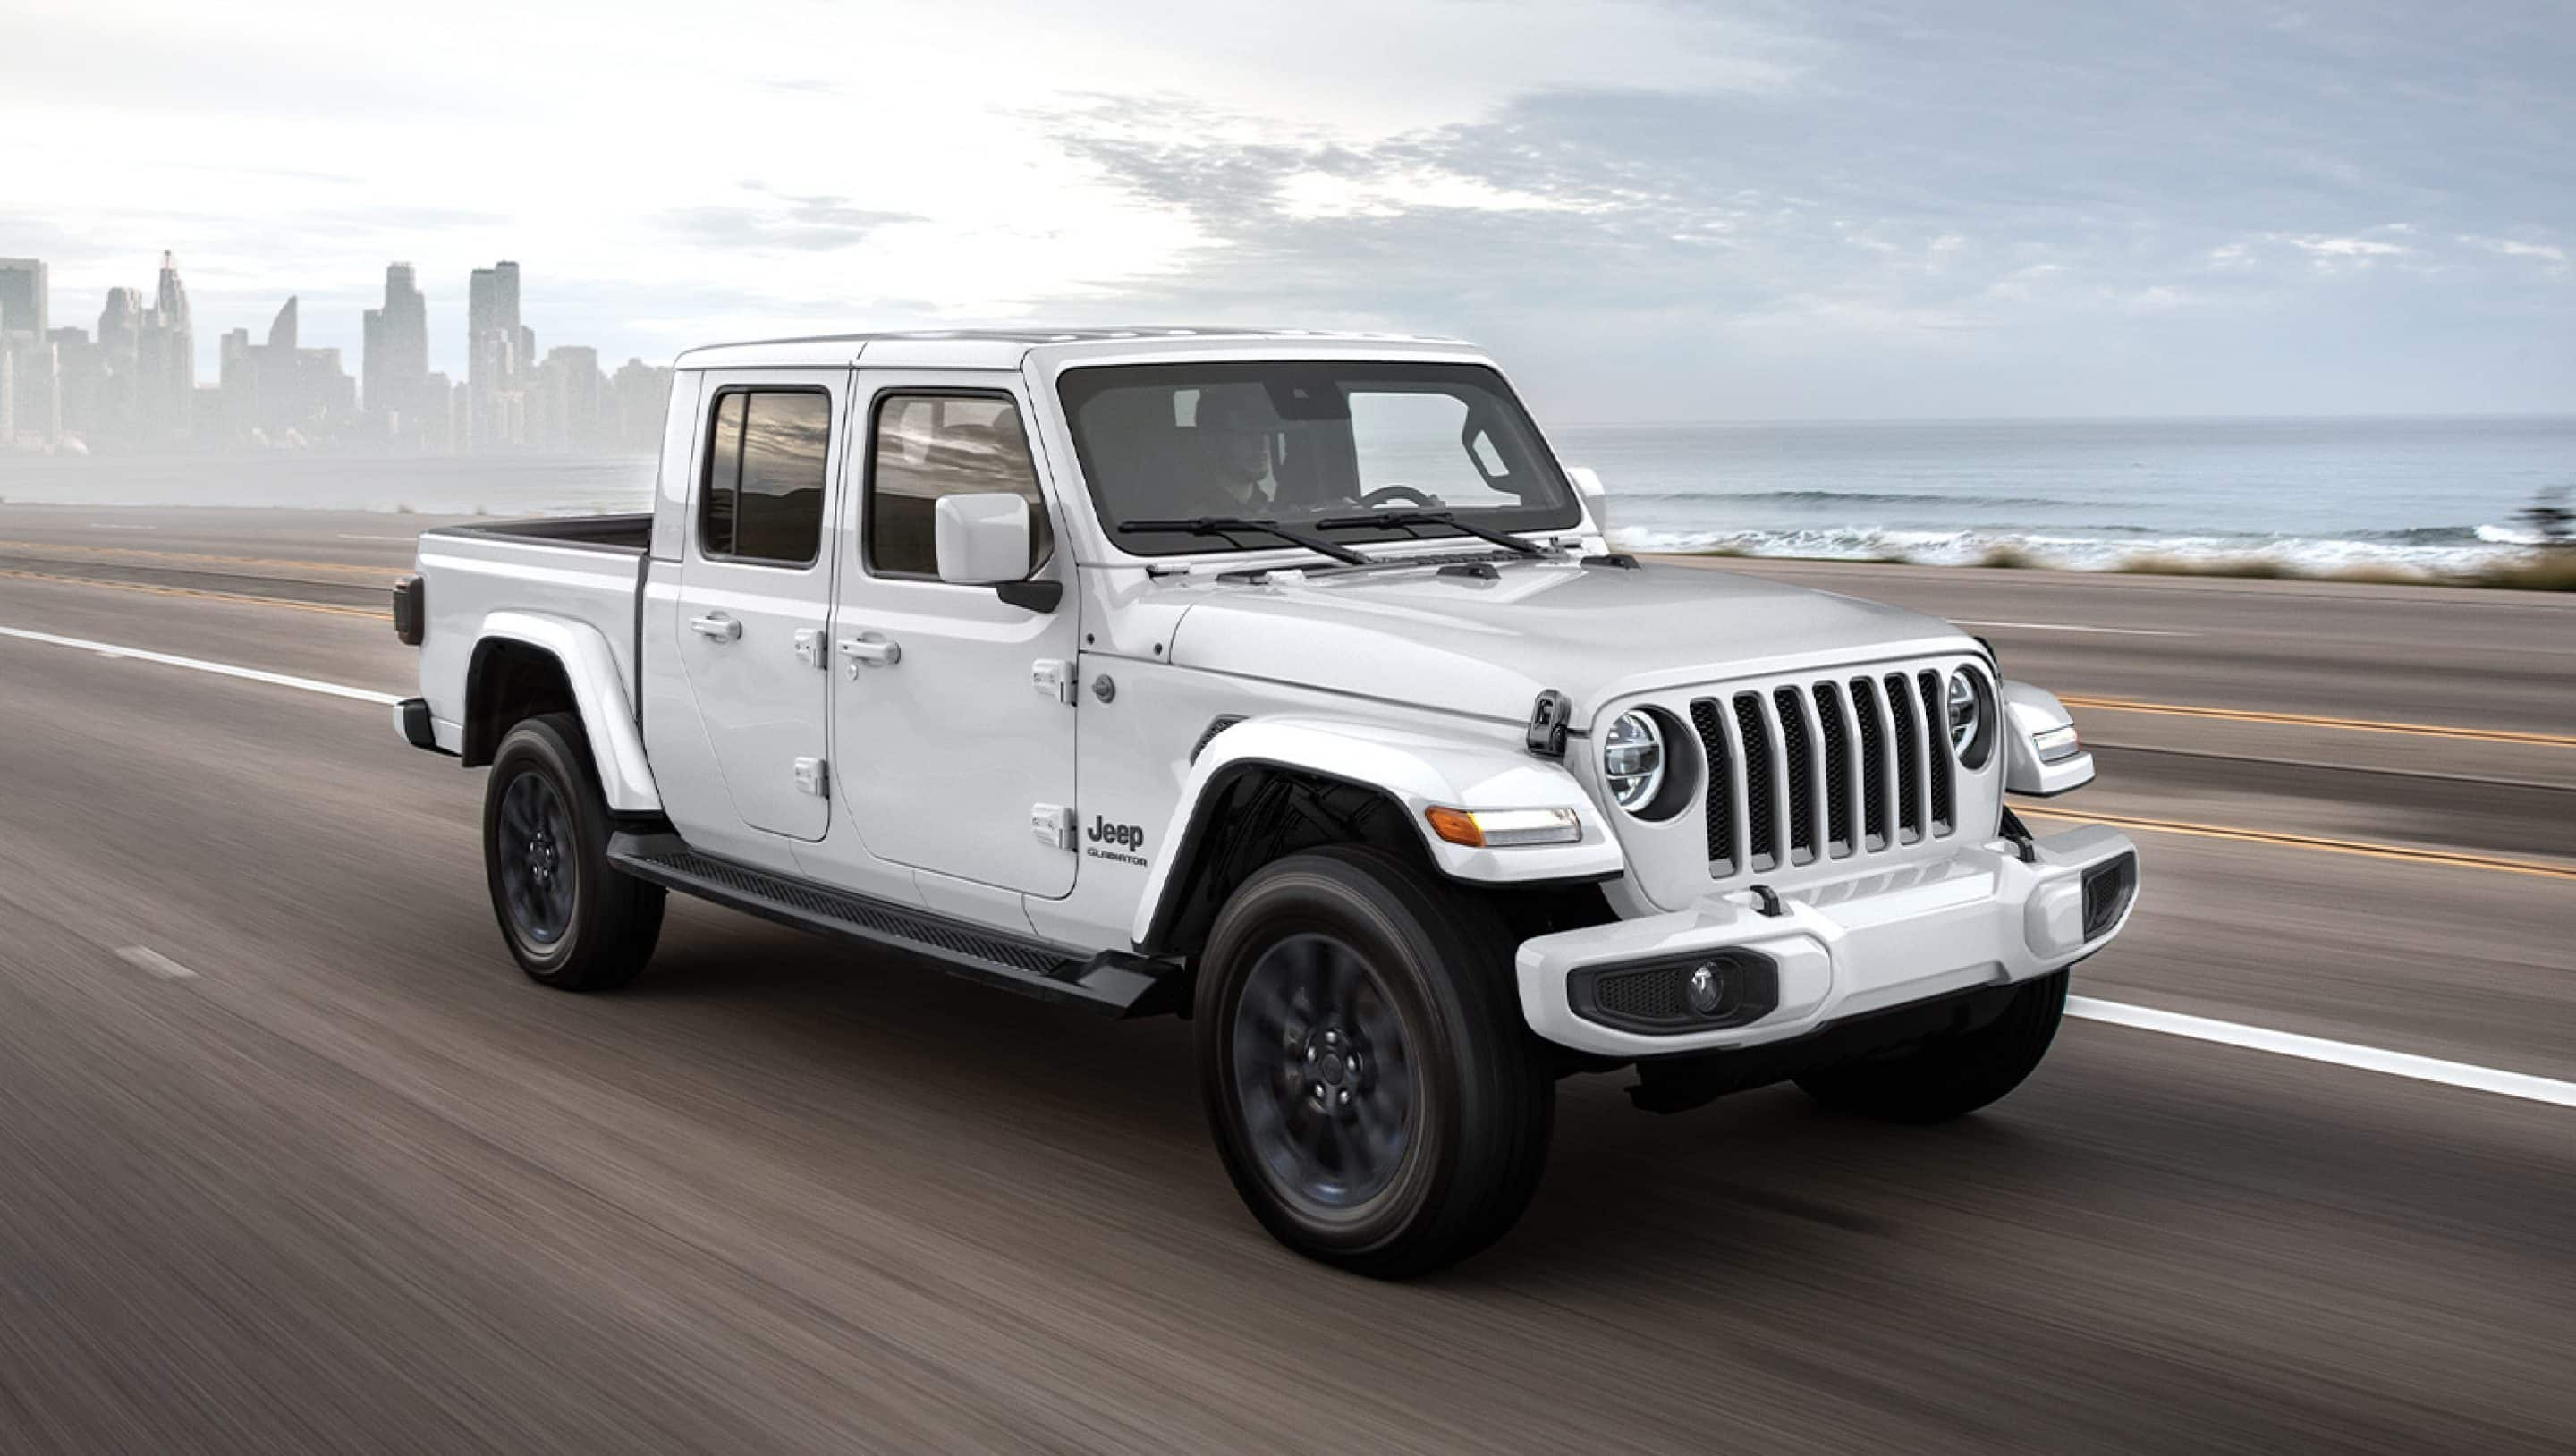 Trim Levels of the 2020 Jeep Gladiator